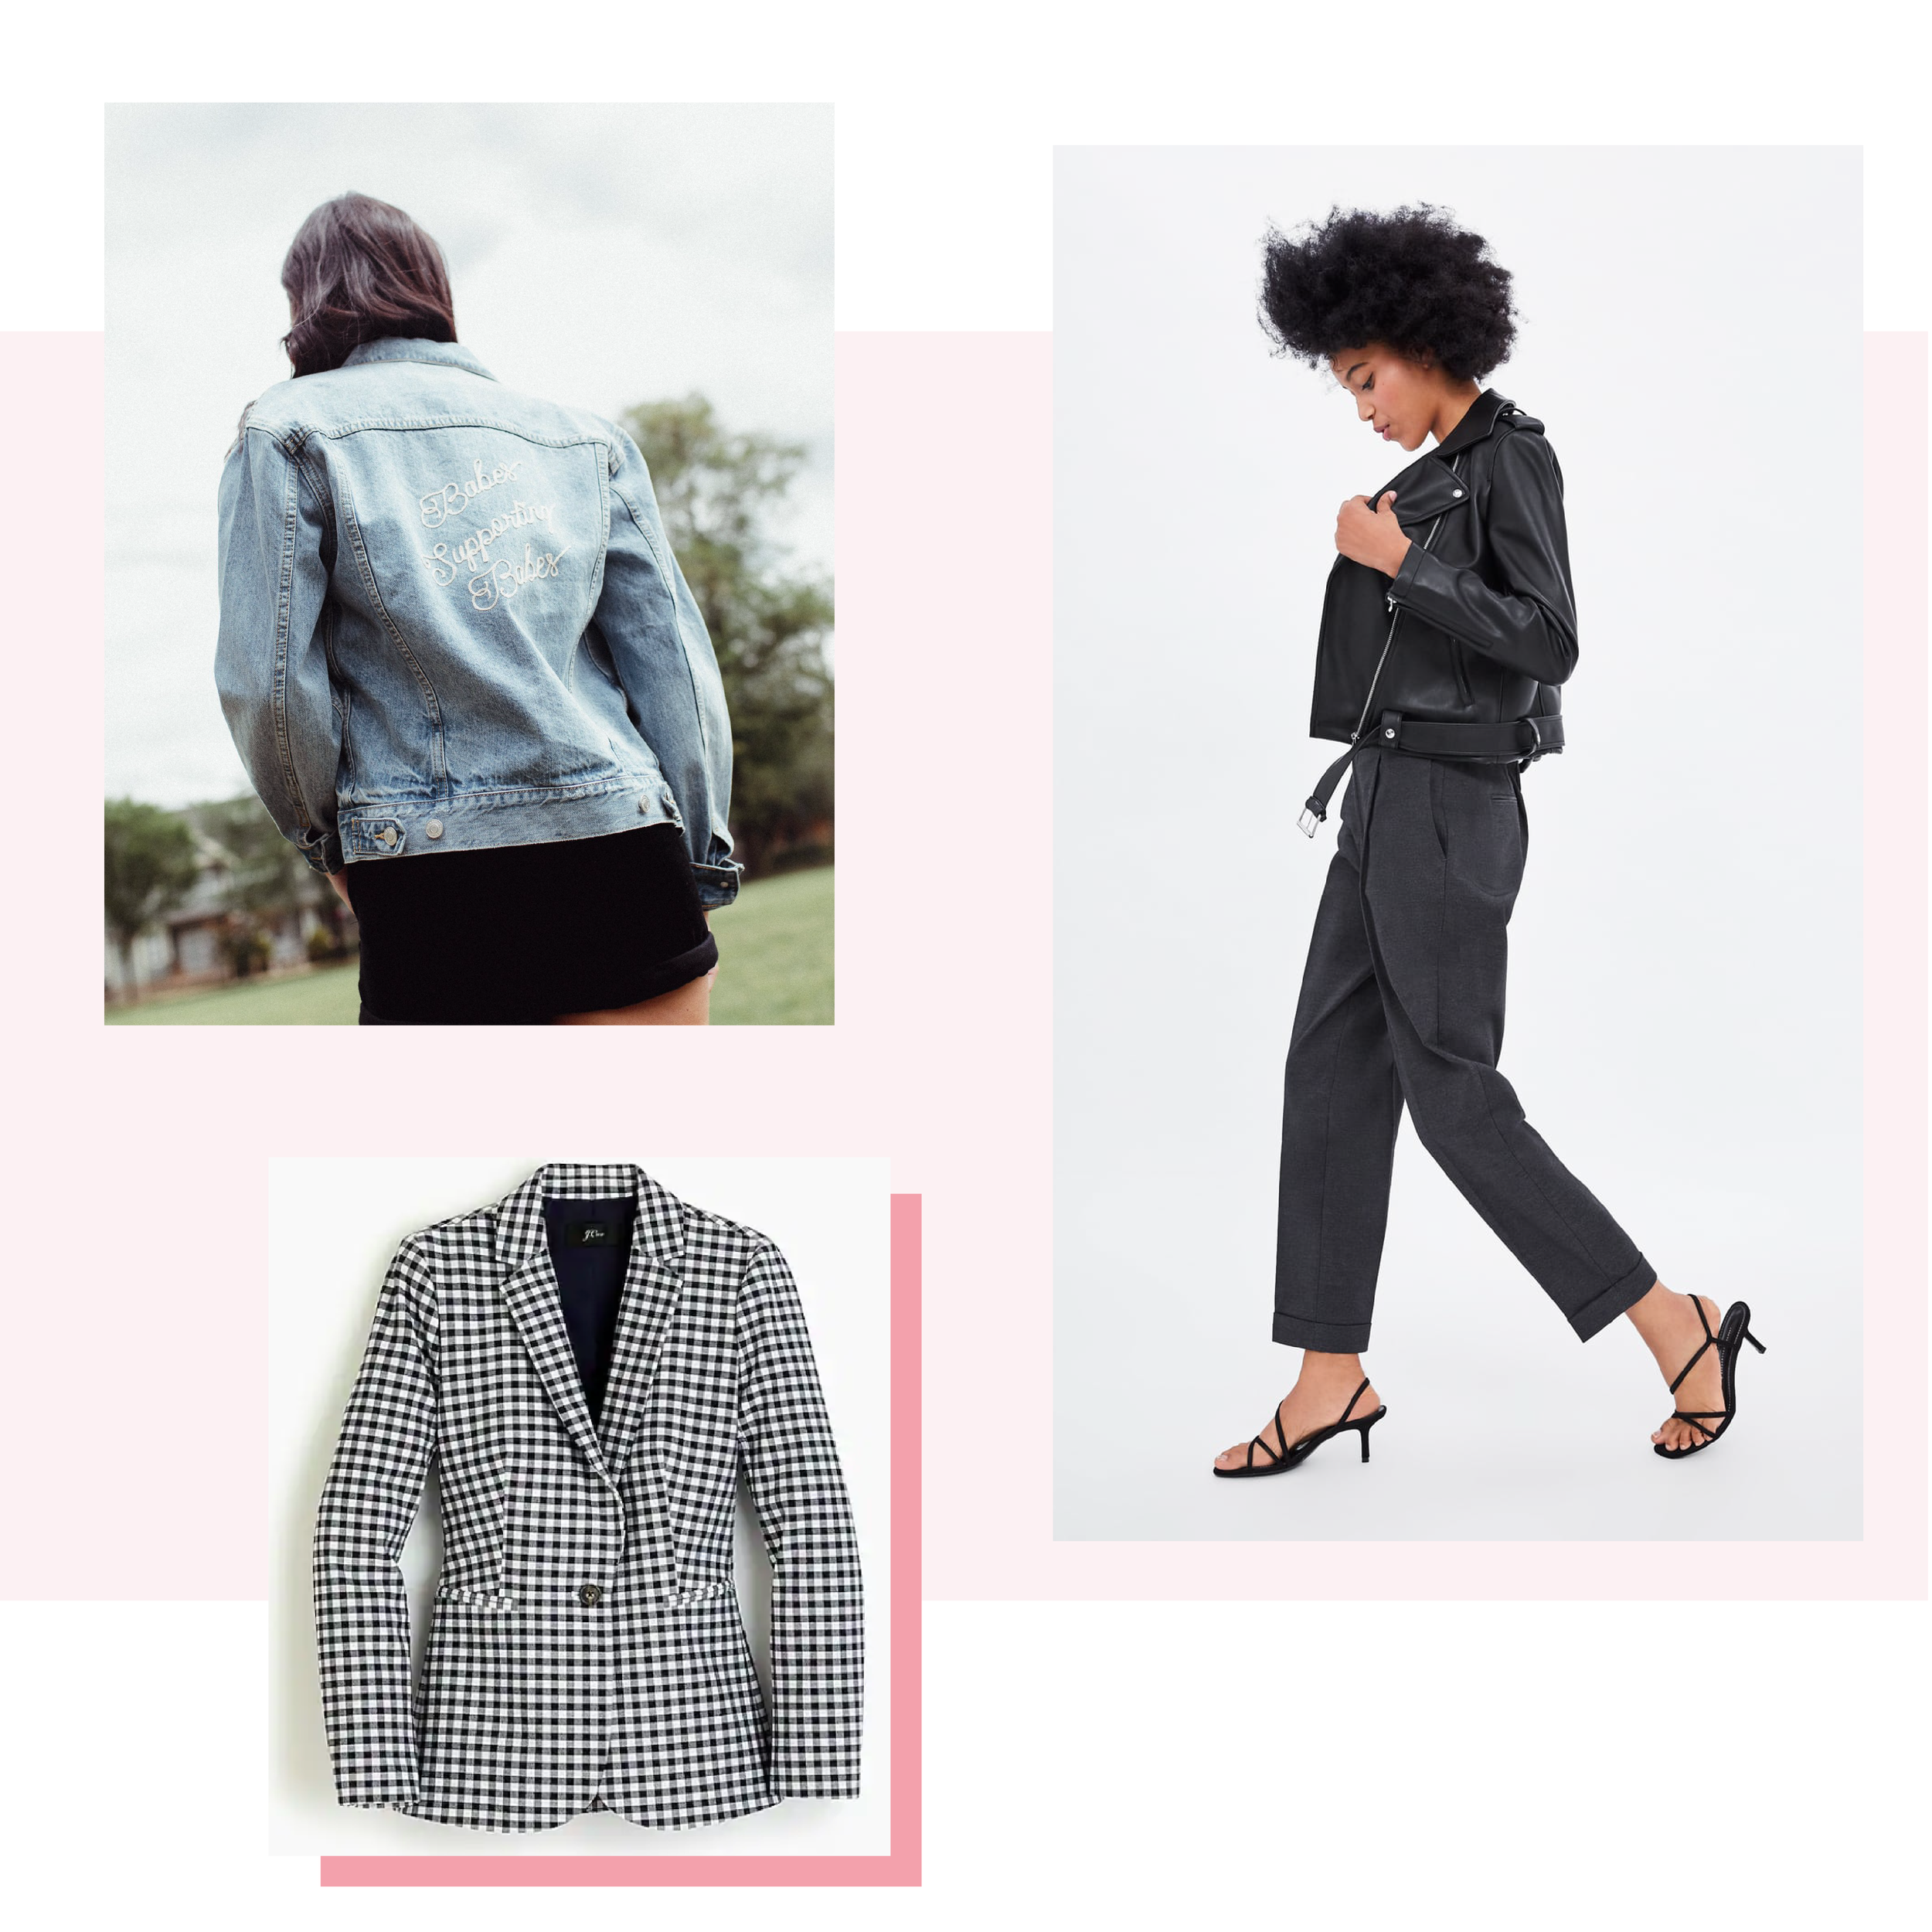 A Statement Jacket - There really is nothing better than the hero piece of fashion: a statement jacket. Whether you go bold with a gingham printed blazer, bad ass in your favourite leather jacket, or comfy in that perfectly worn-in jean jacket, an eye-catching topper is always a good choice.